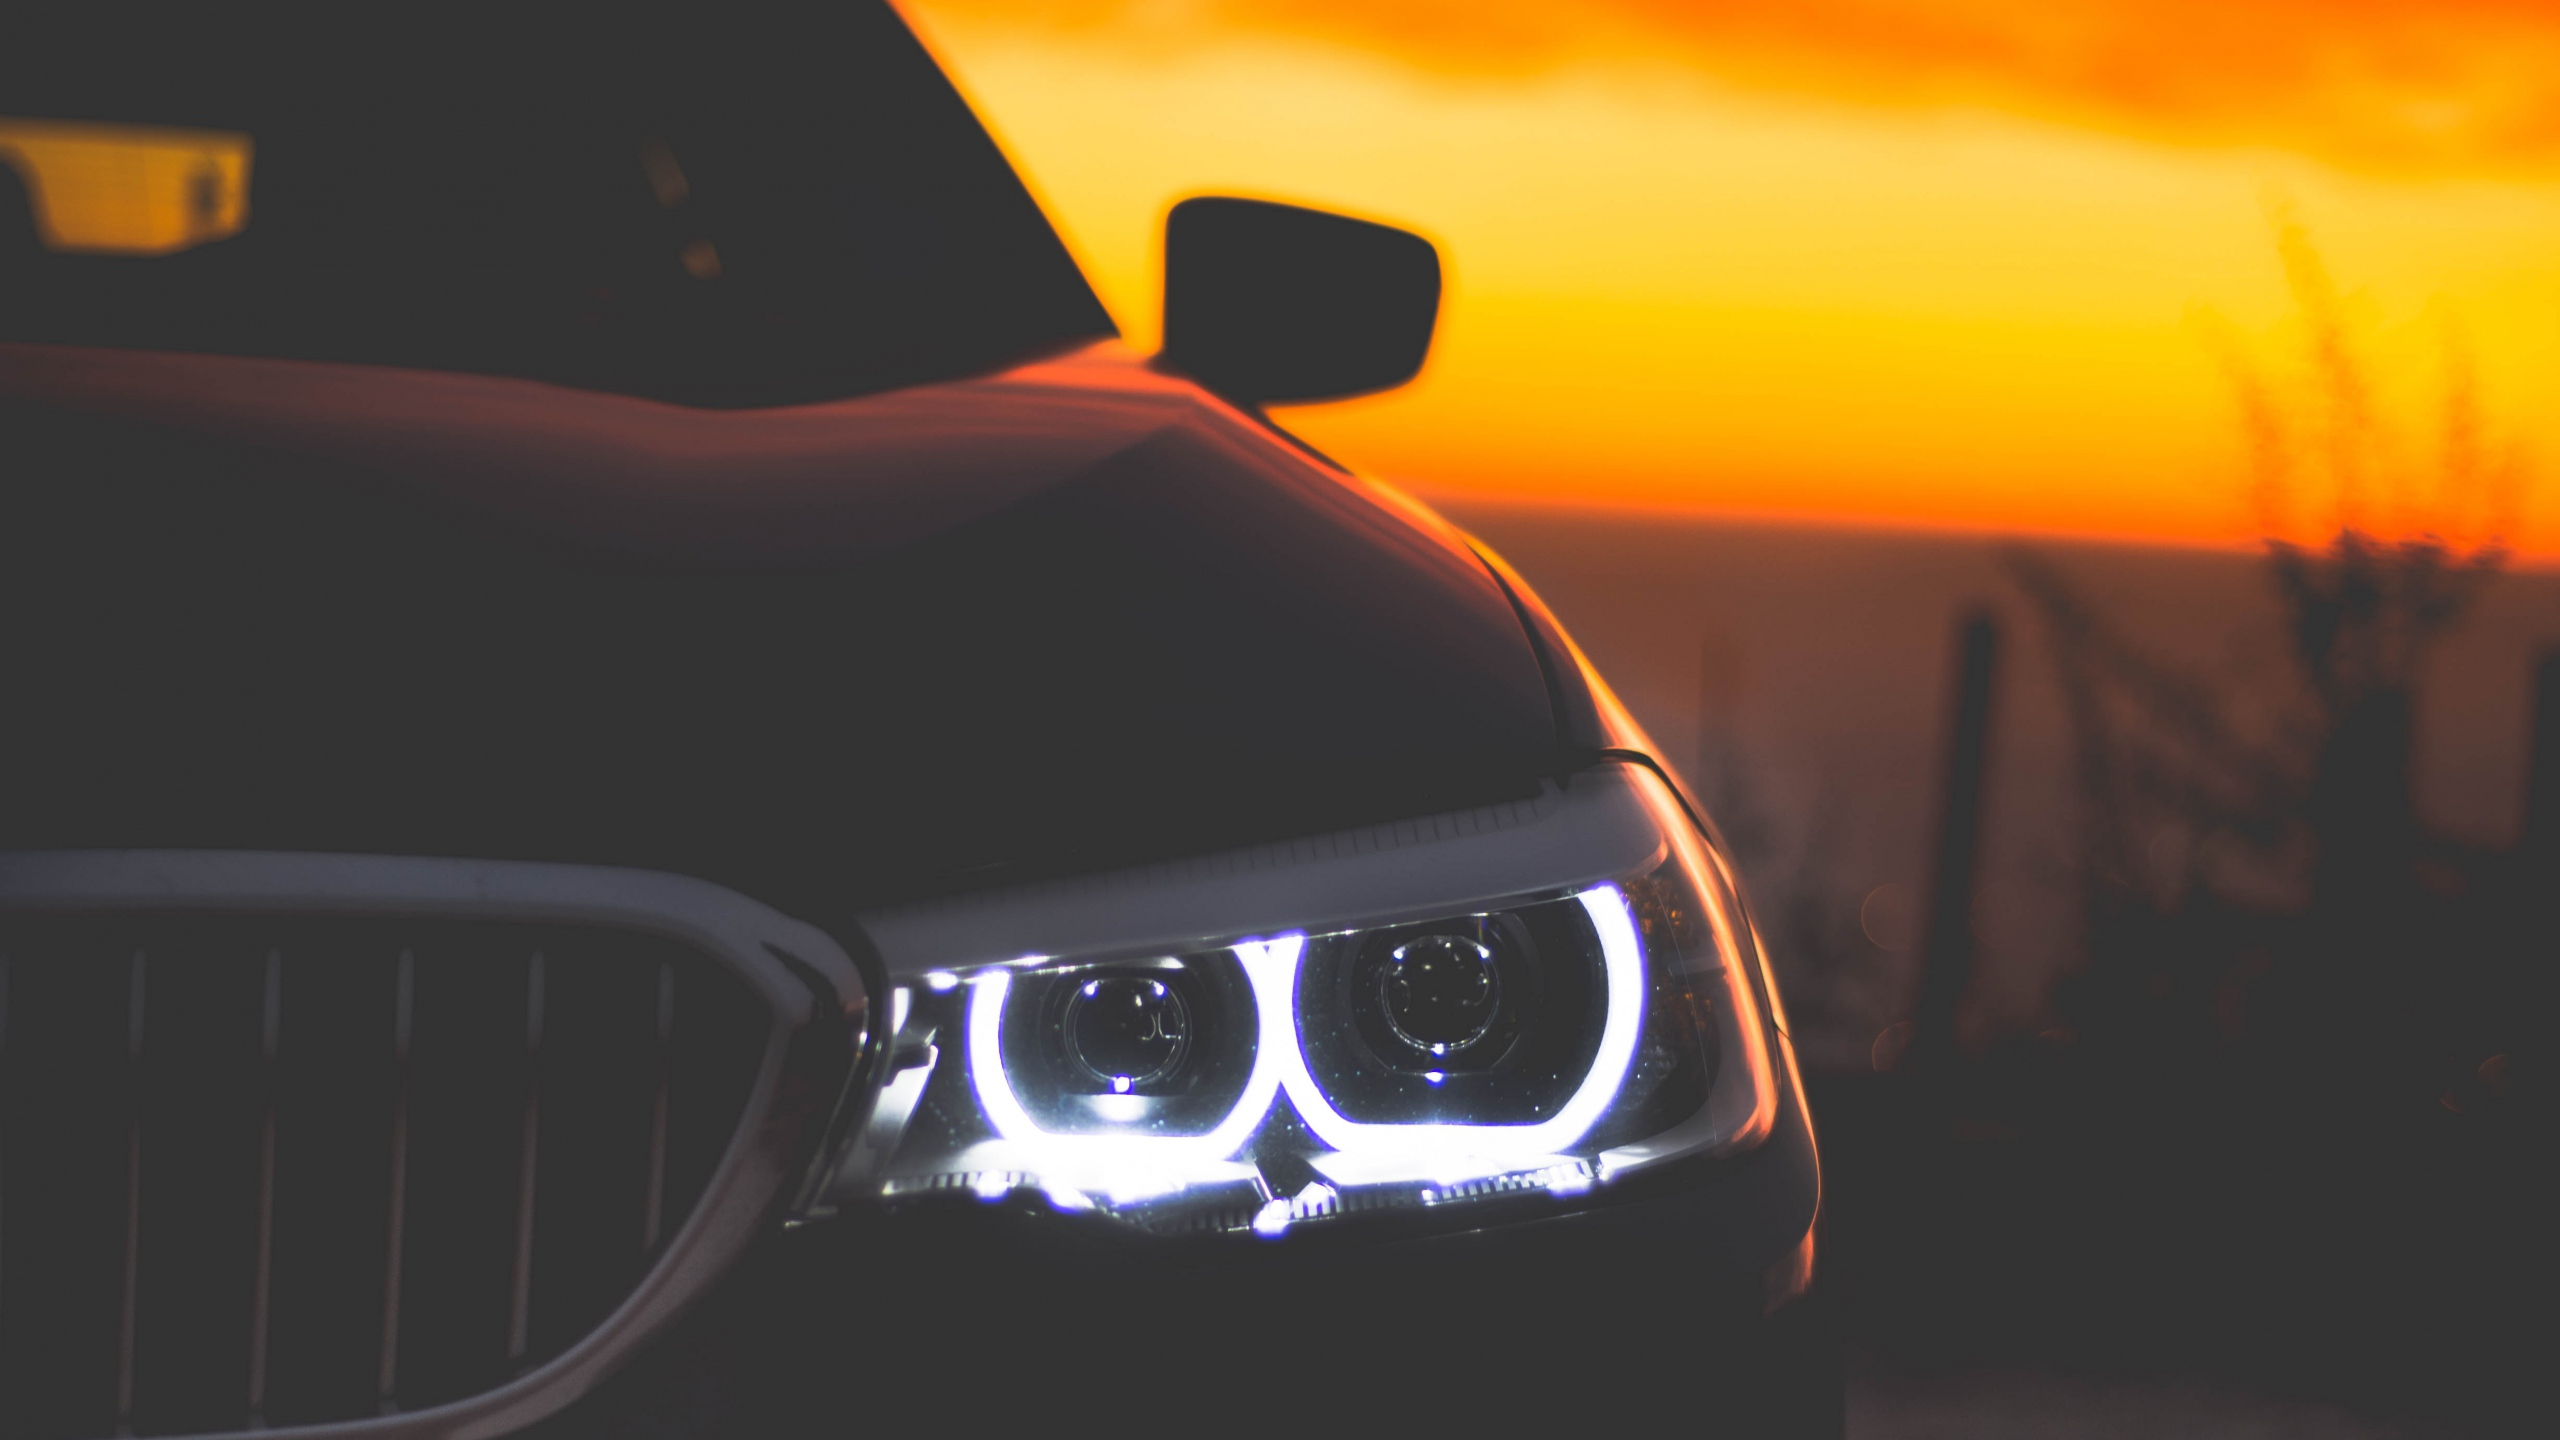 Wallpaper of Auto, Farah, Night, BMW background & HD image